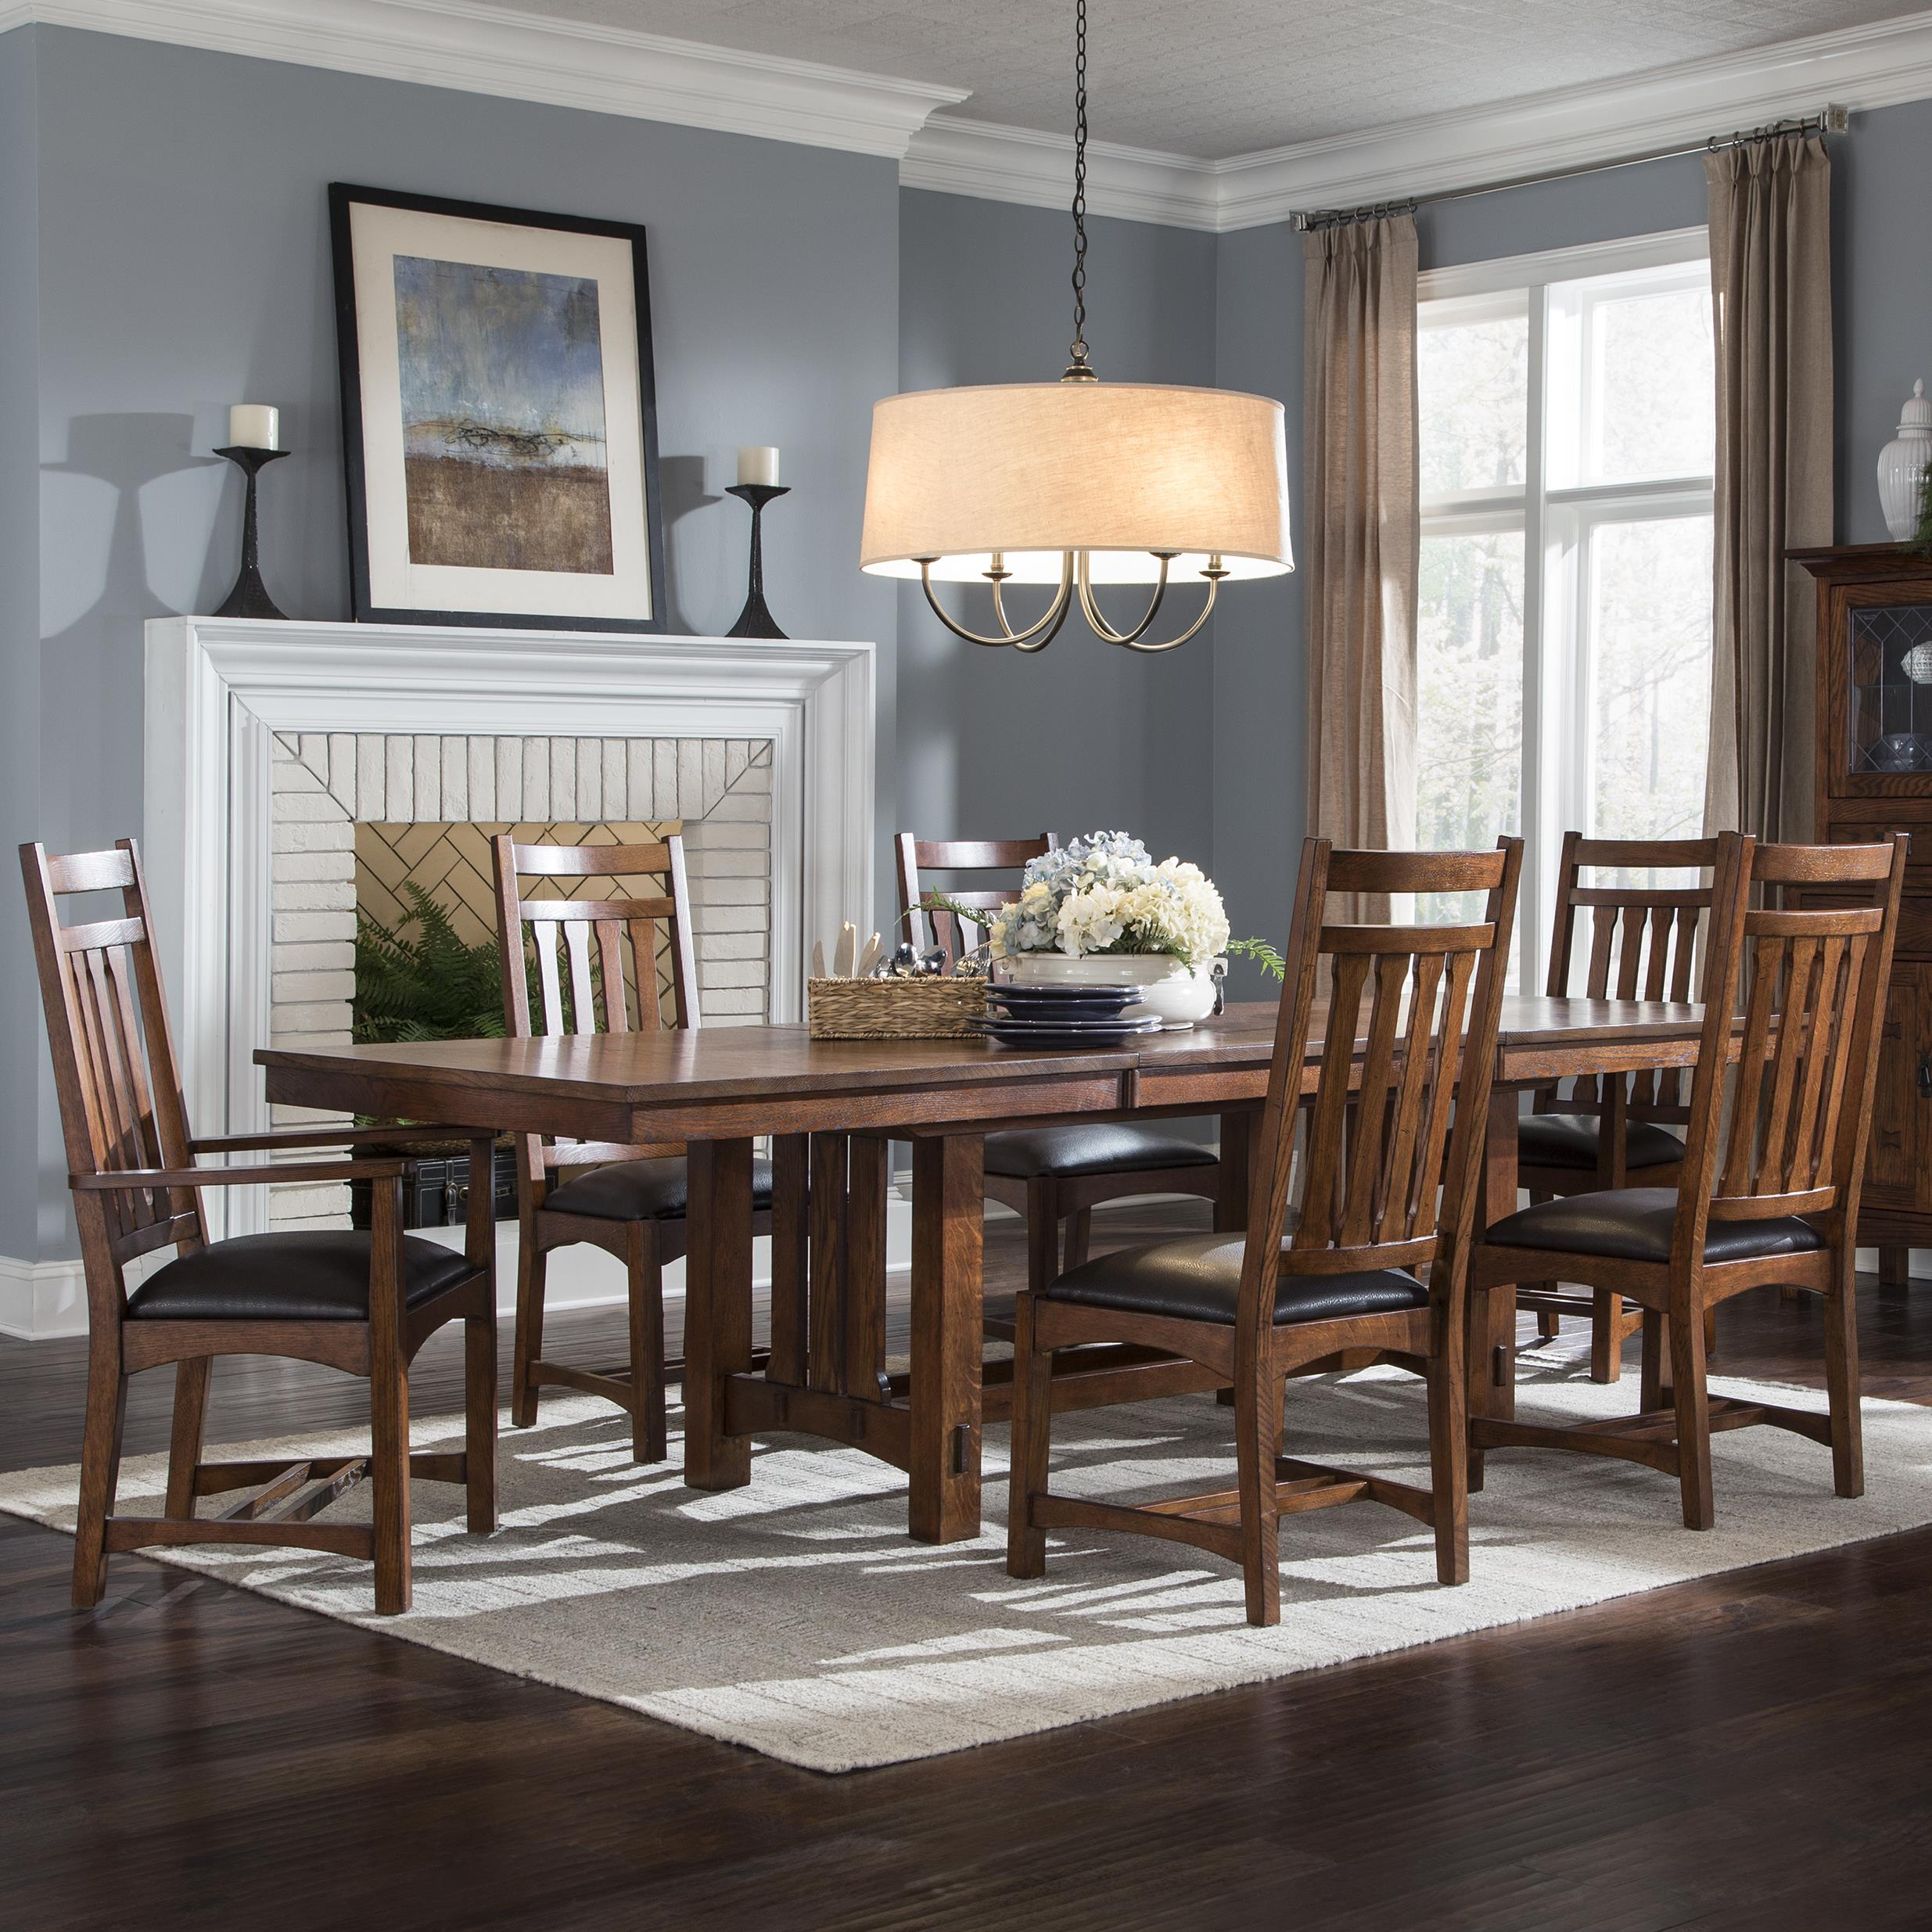 Oak Dining Room Set Sideboard Table Pressback Chairs: Intercon Oak Park 7 Piece Dining Set With Slat Back Chairs